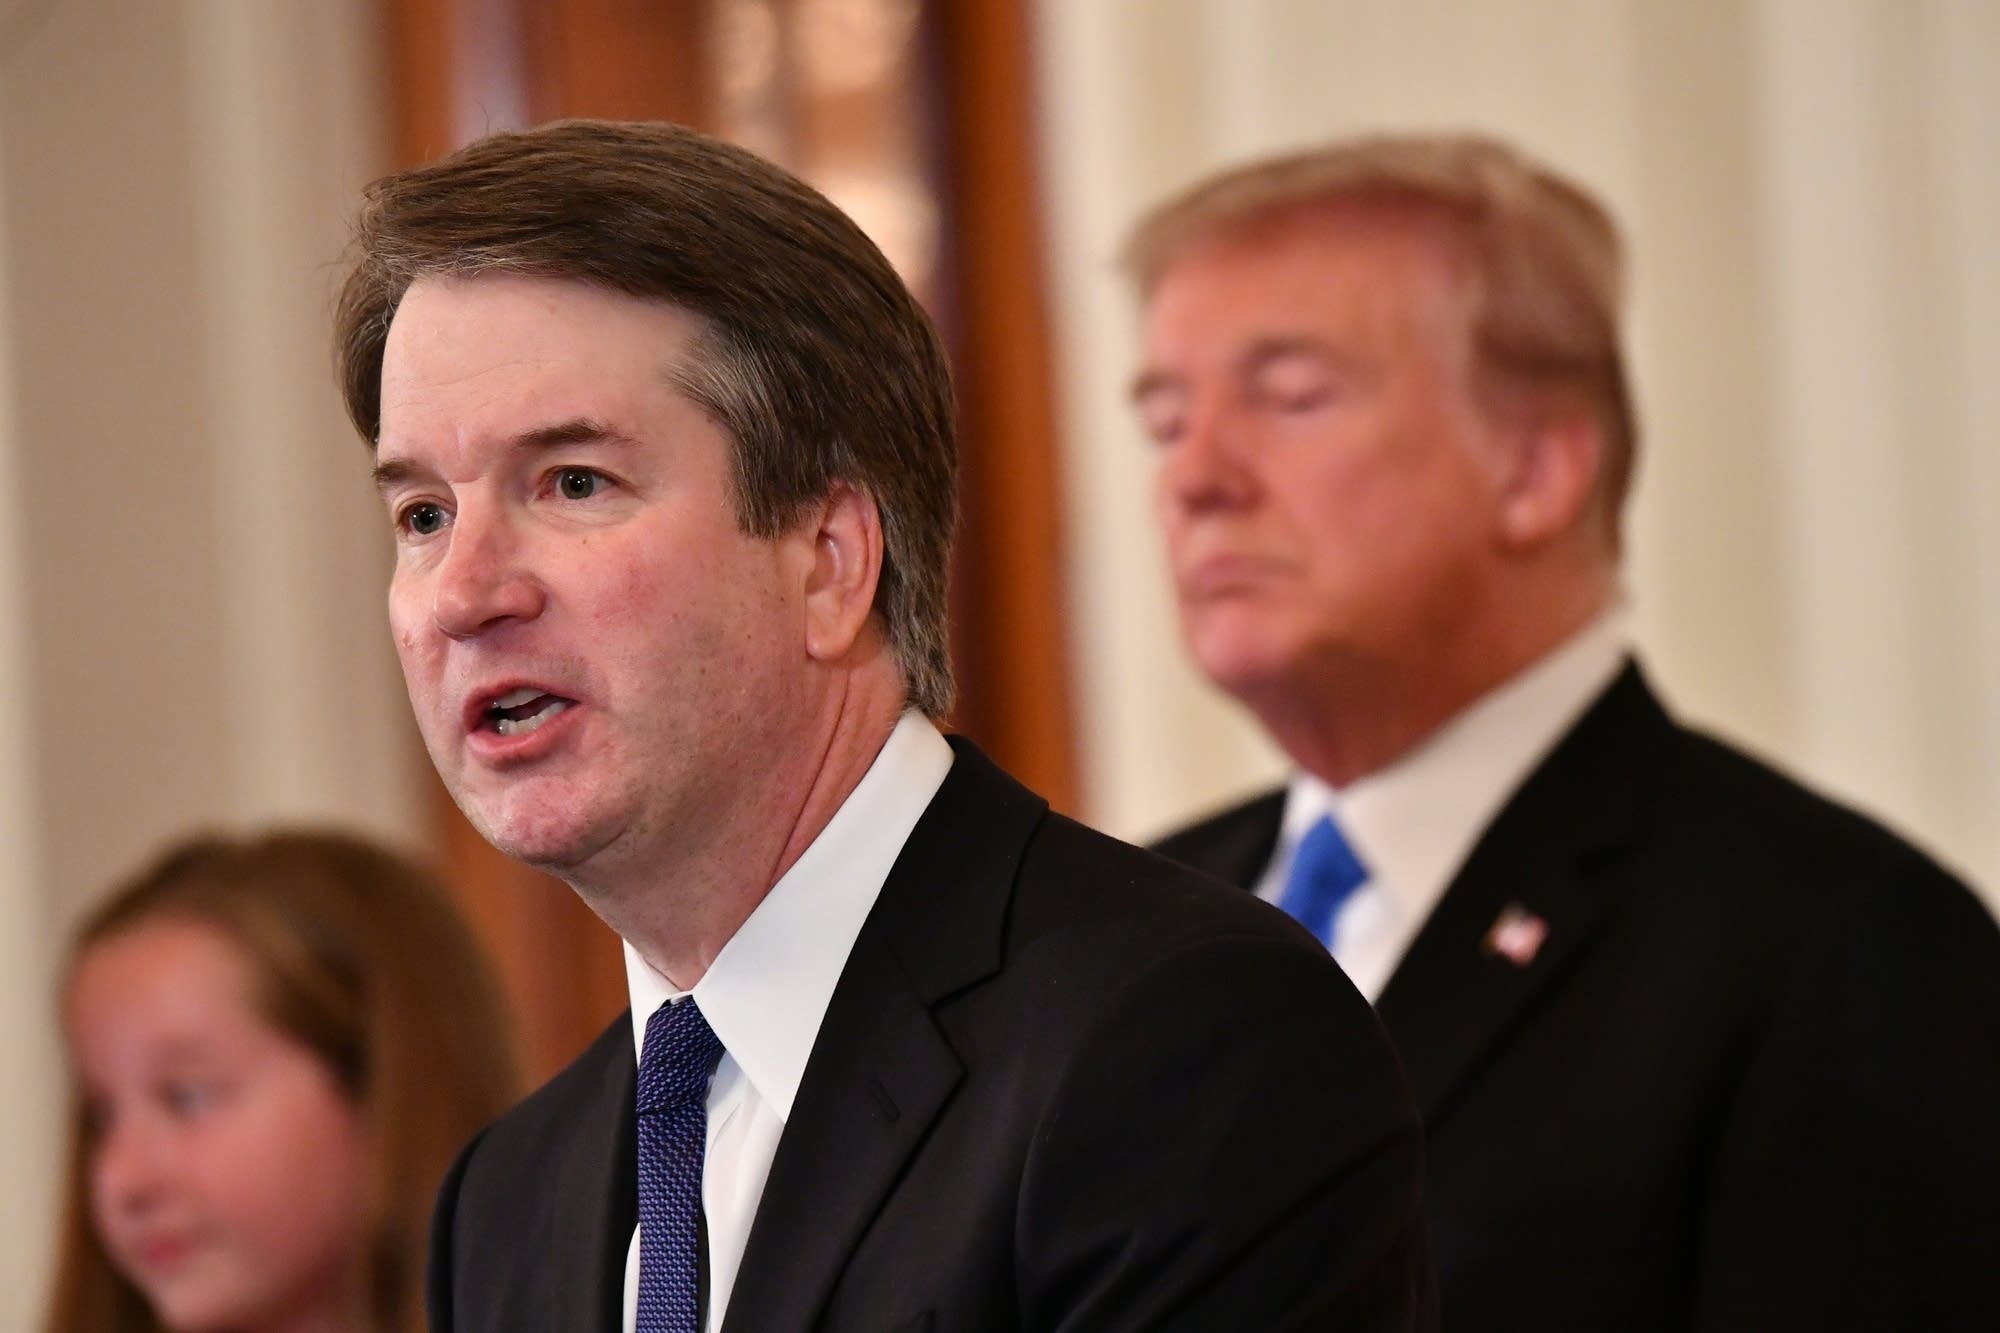 Supreme Court nominee Brett Kavanaugh